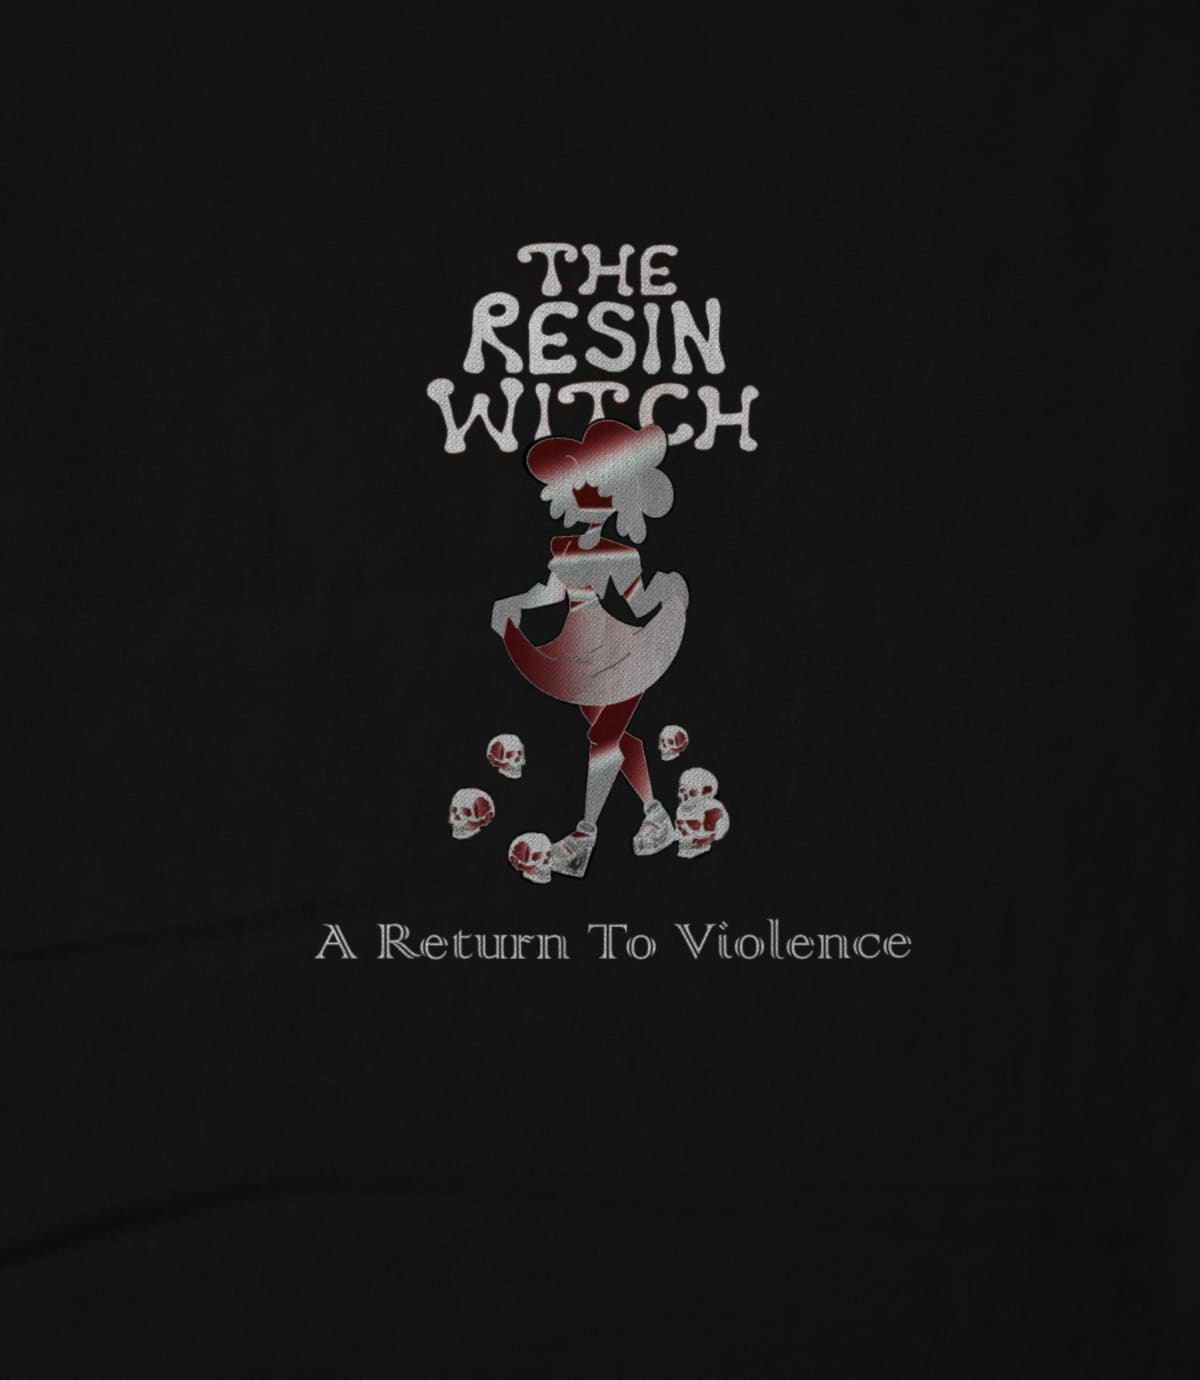 Resin witch pretty violent 1607012234